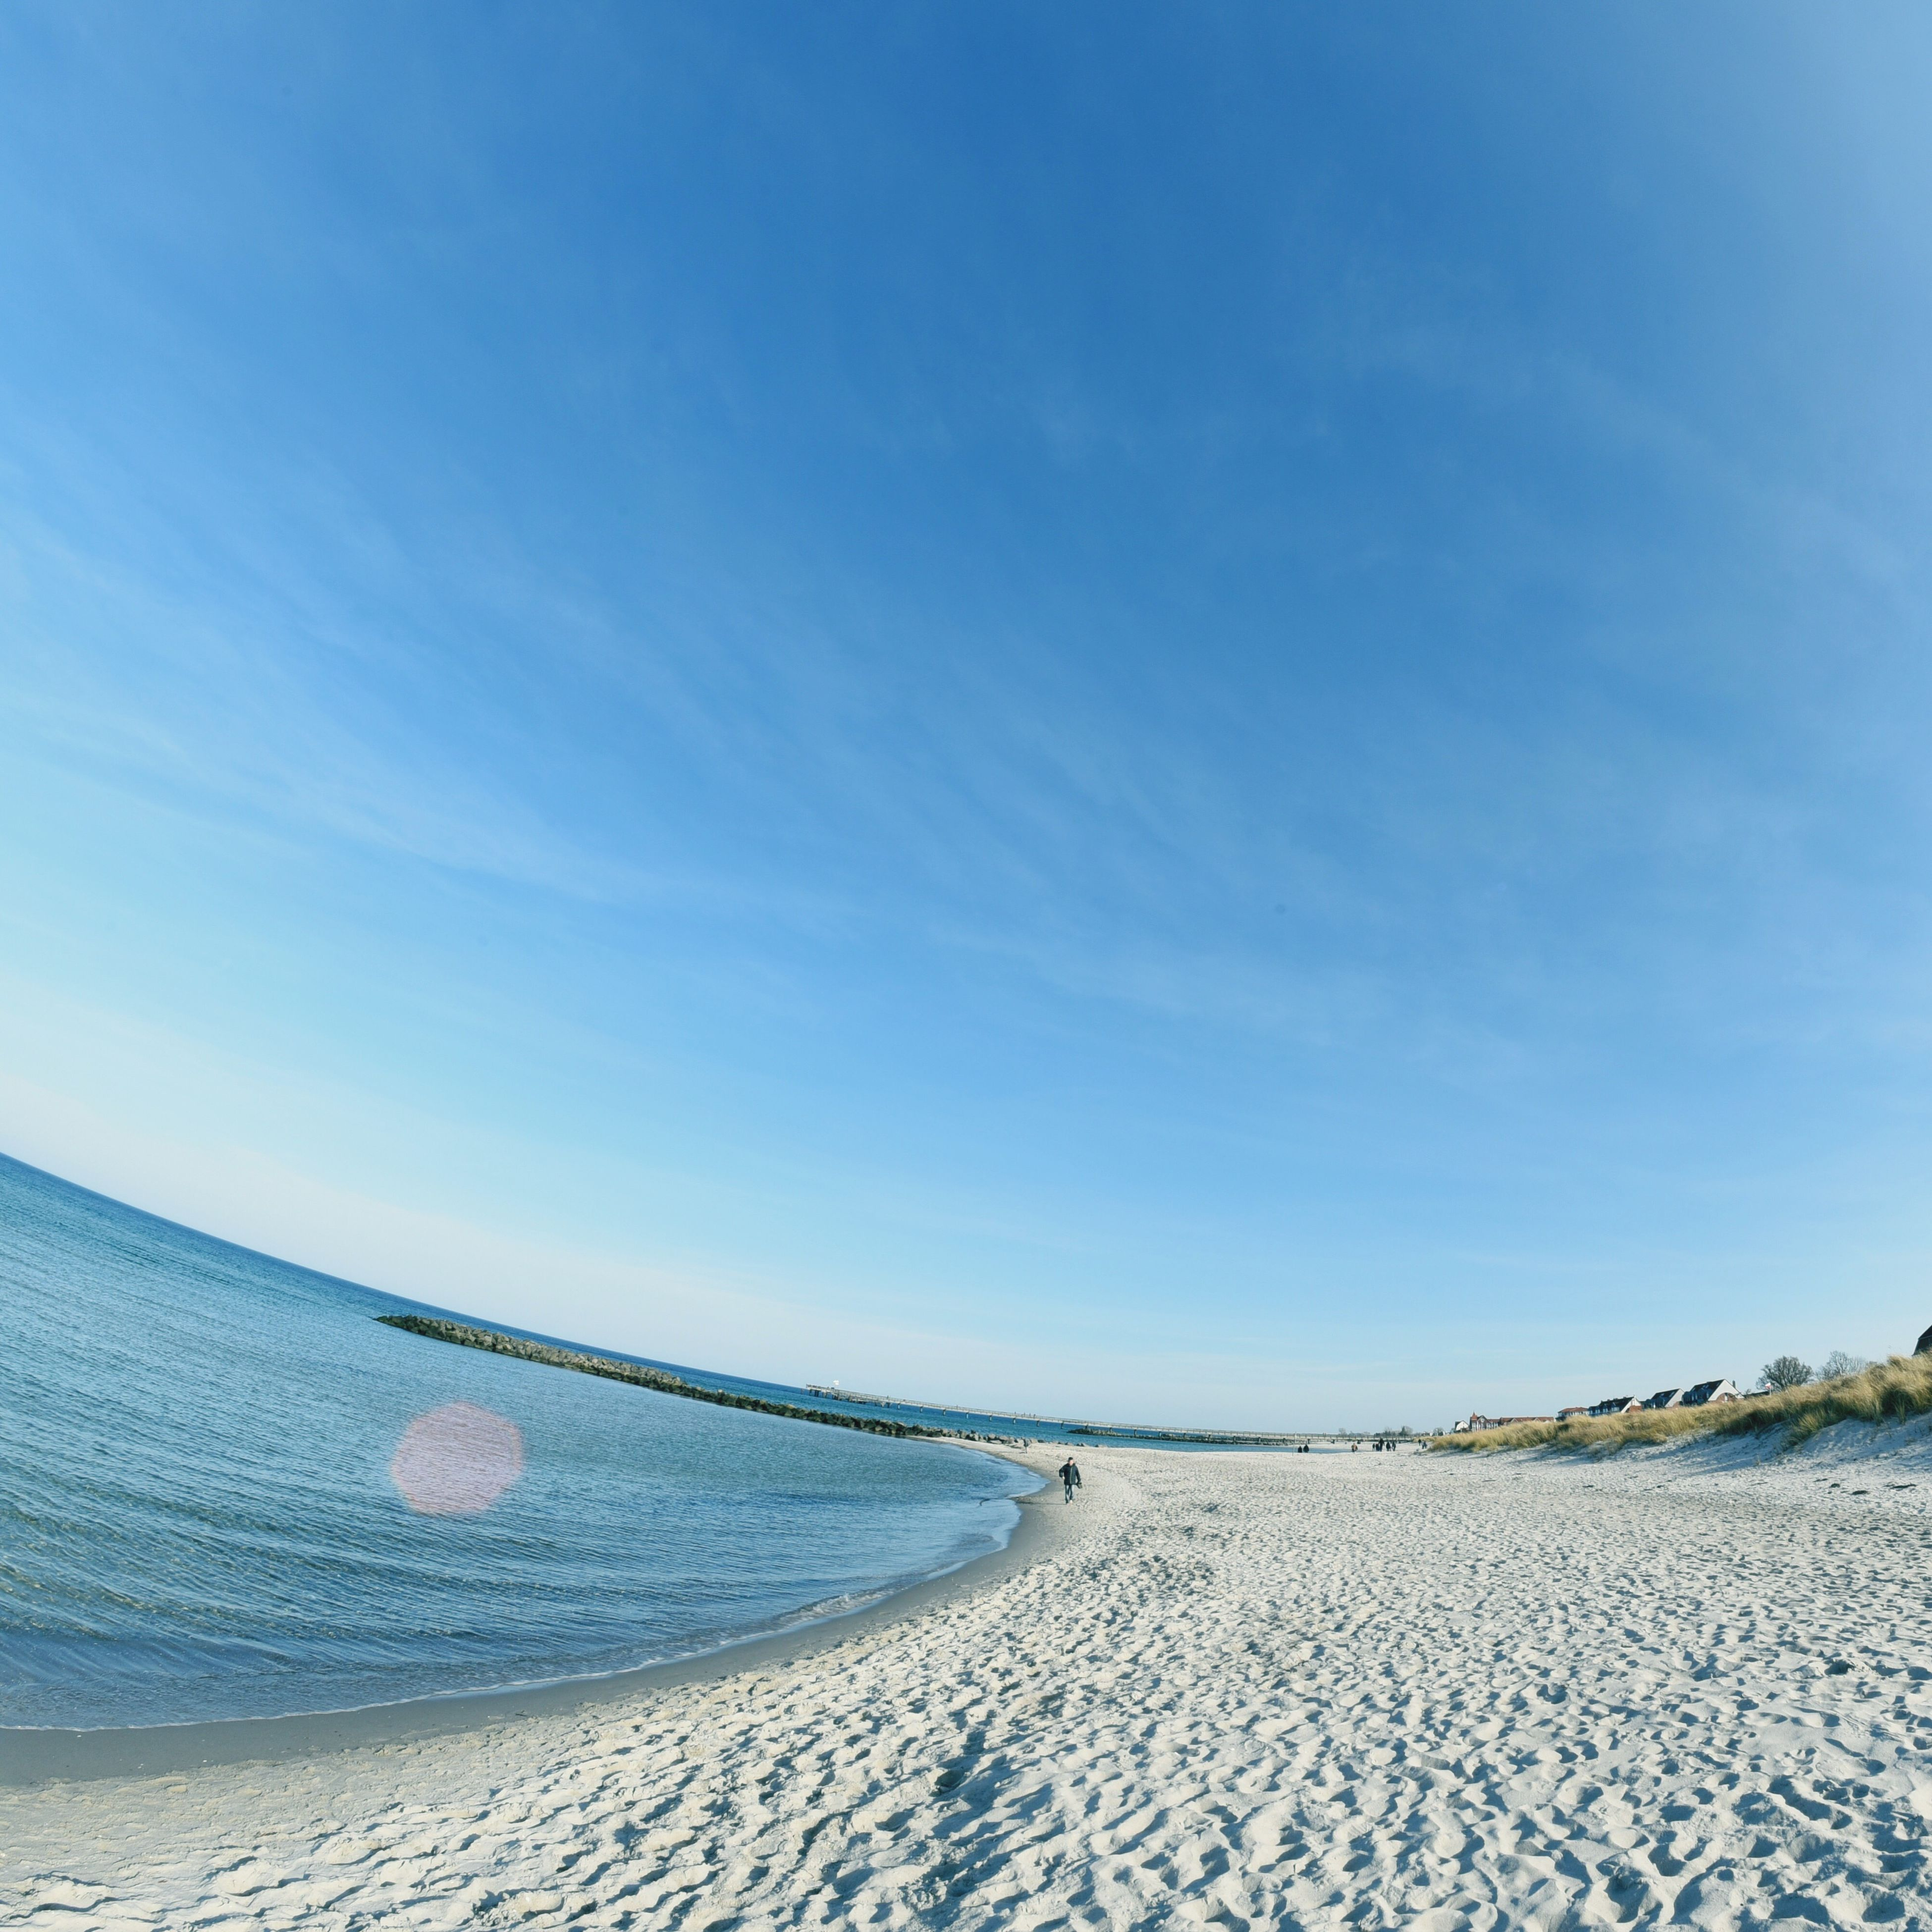 beach, sea, sand, blue, tranquility, tranquil scene, scenics, beauty in nature, sky, water, nature, shore, horizon over water, sunlight, idyllic, day, outdoors, remote, non-urban scene, no people